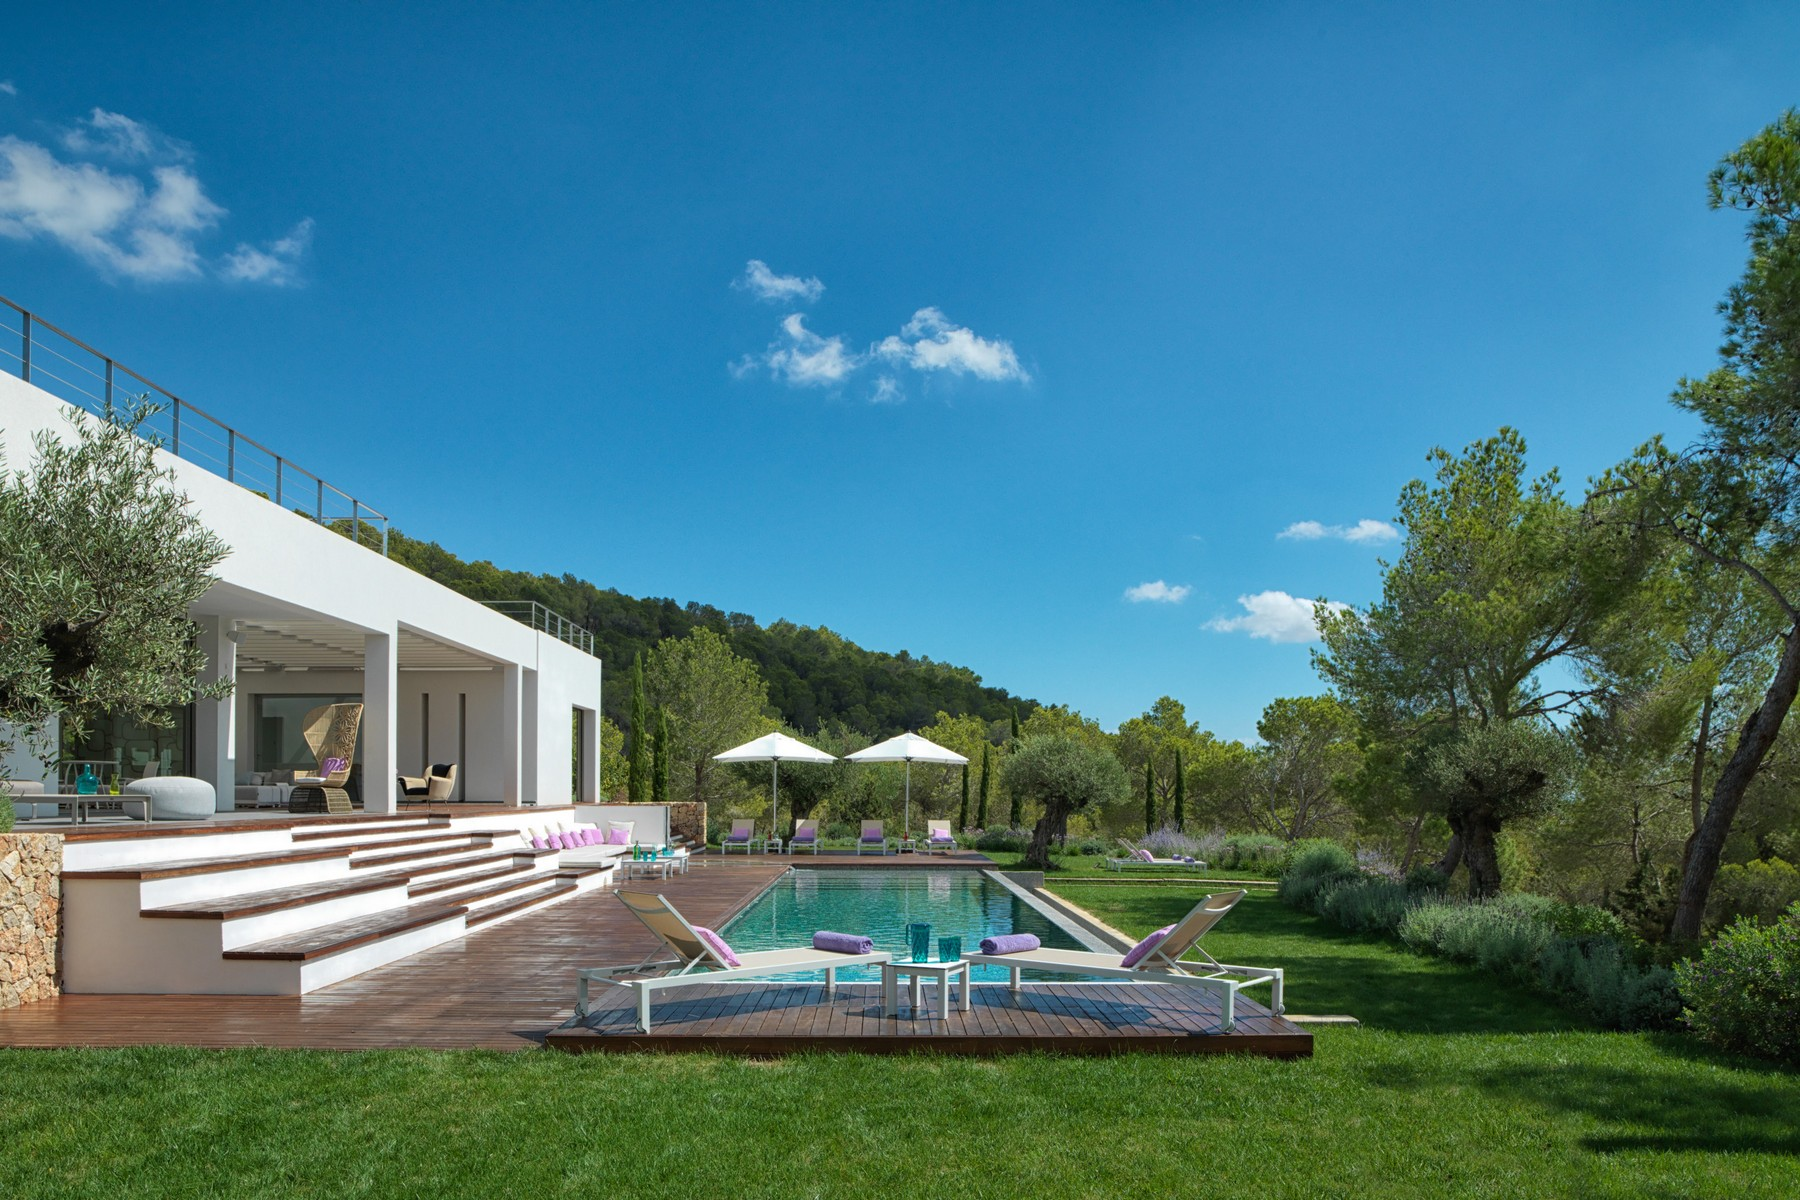 Single Family Home for Sale at Designed Private Villa In A Hill Ibiza, Balearic Islands, 07830 Spain